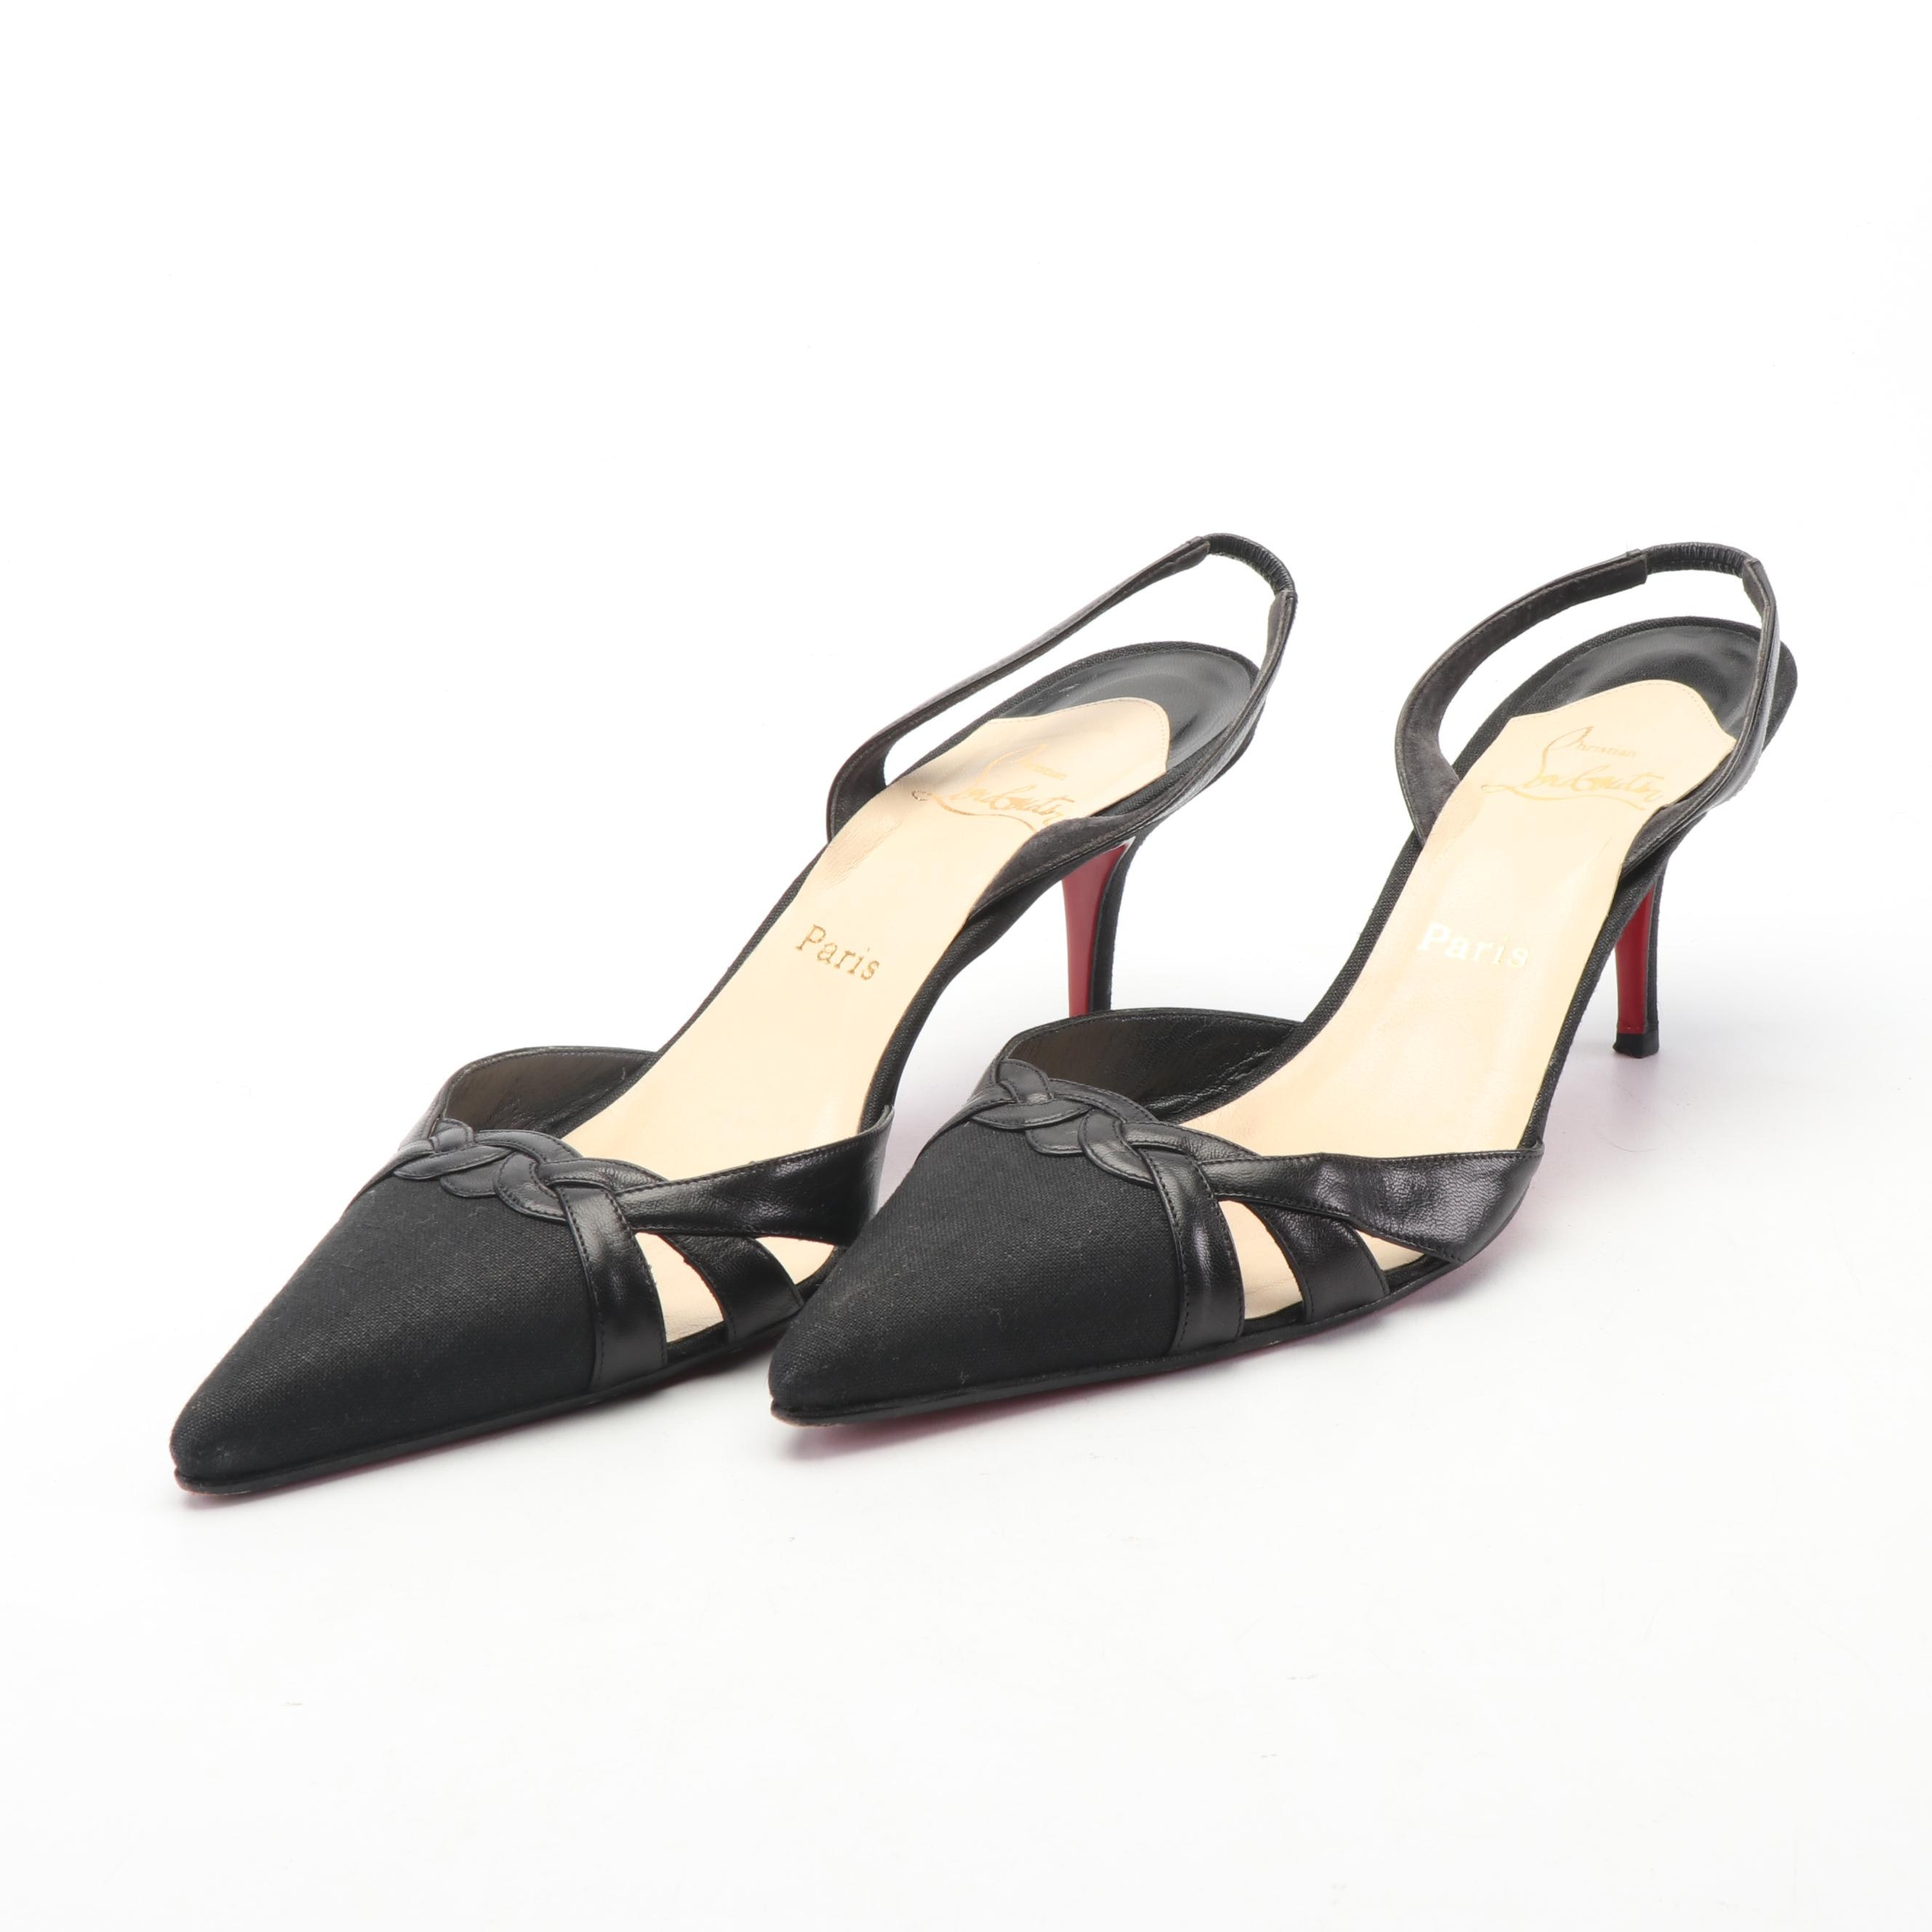 Christian Louboutin Paris Black Canvas and Leather Slingback Pumps